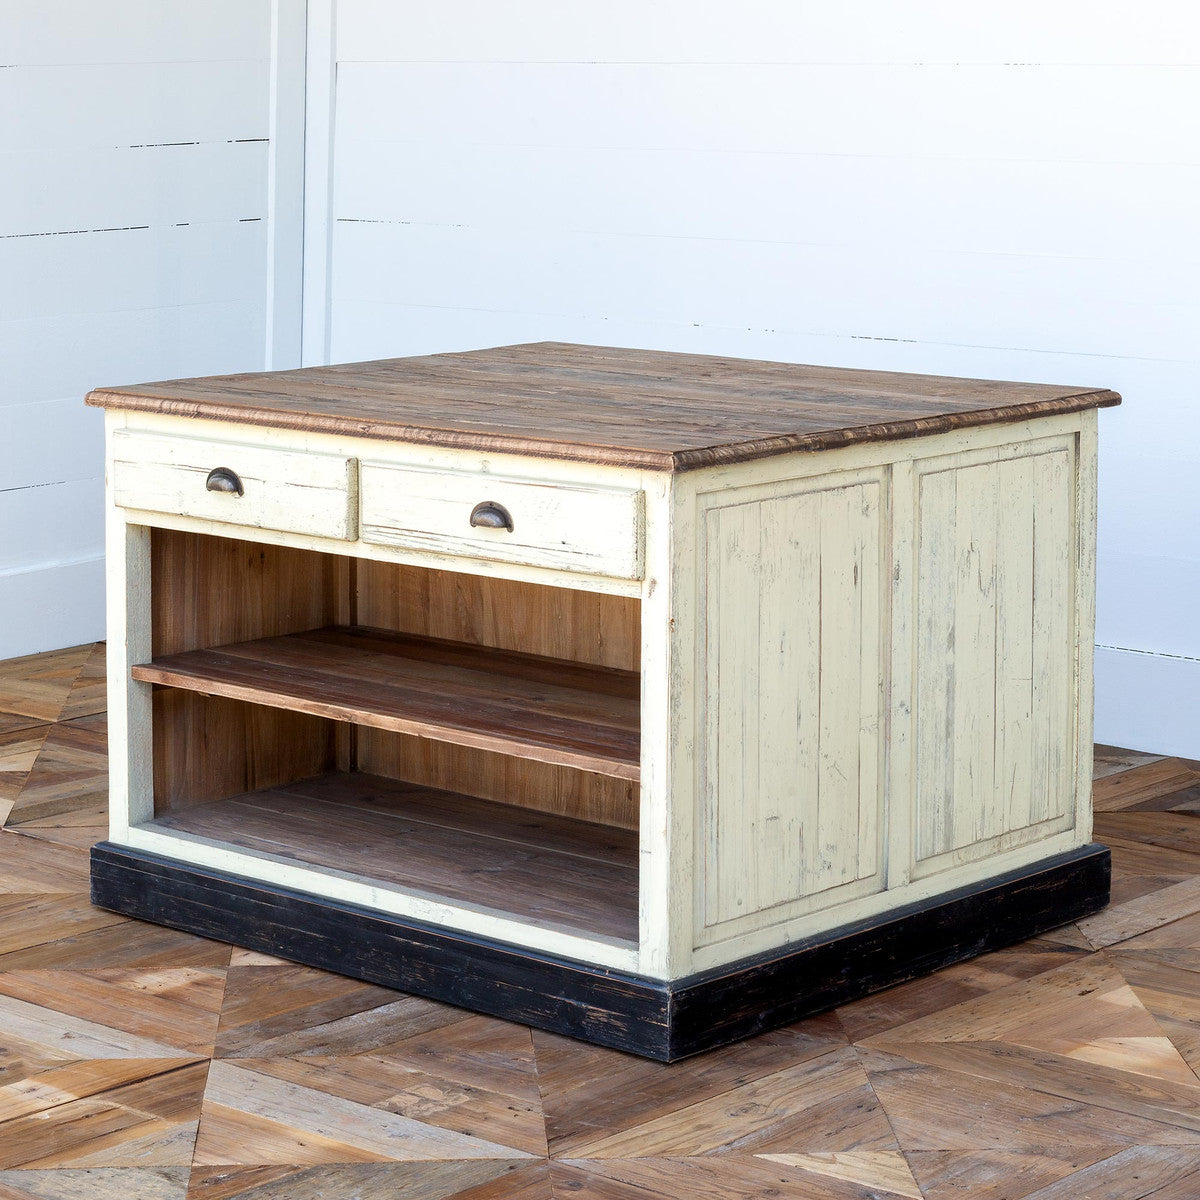 Lovecup Two Sided Kitchen Work Island with Drawers L909